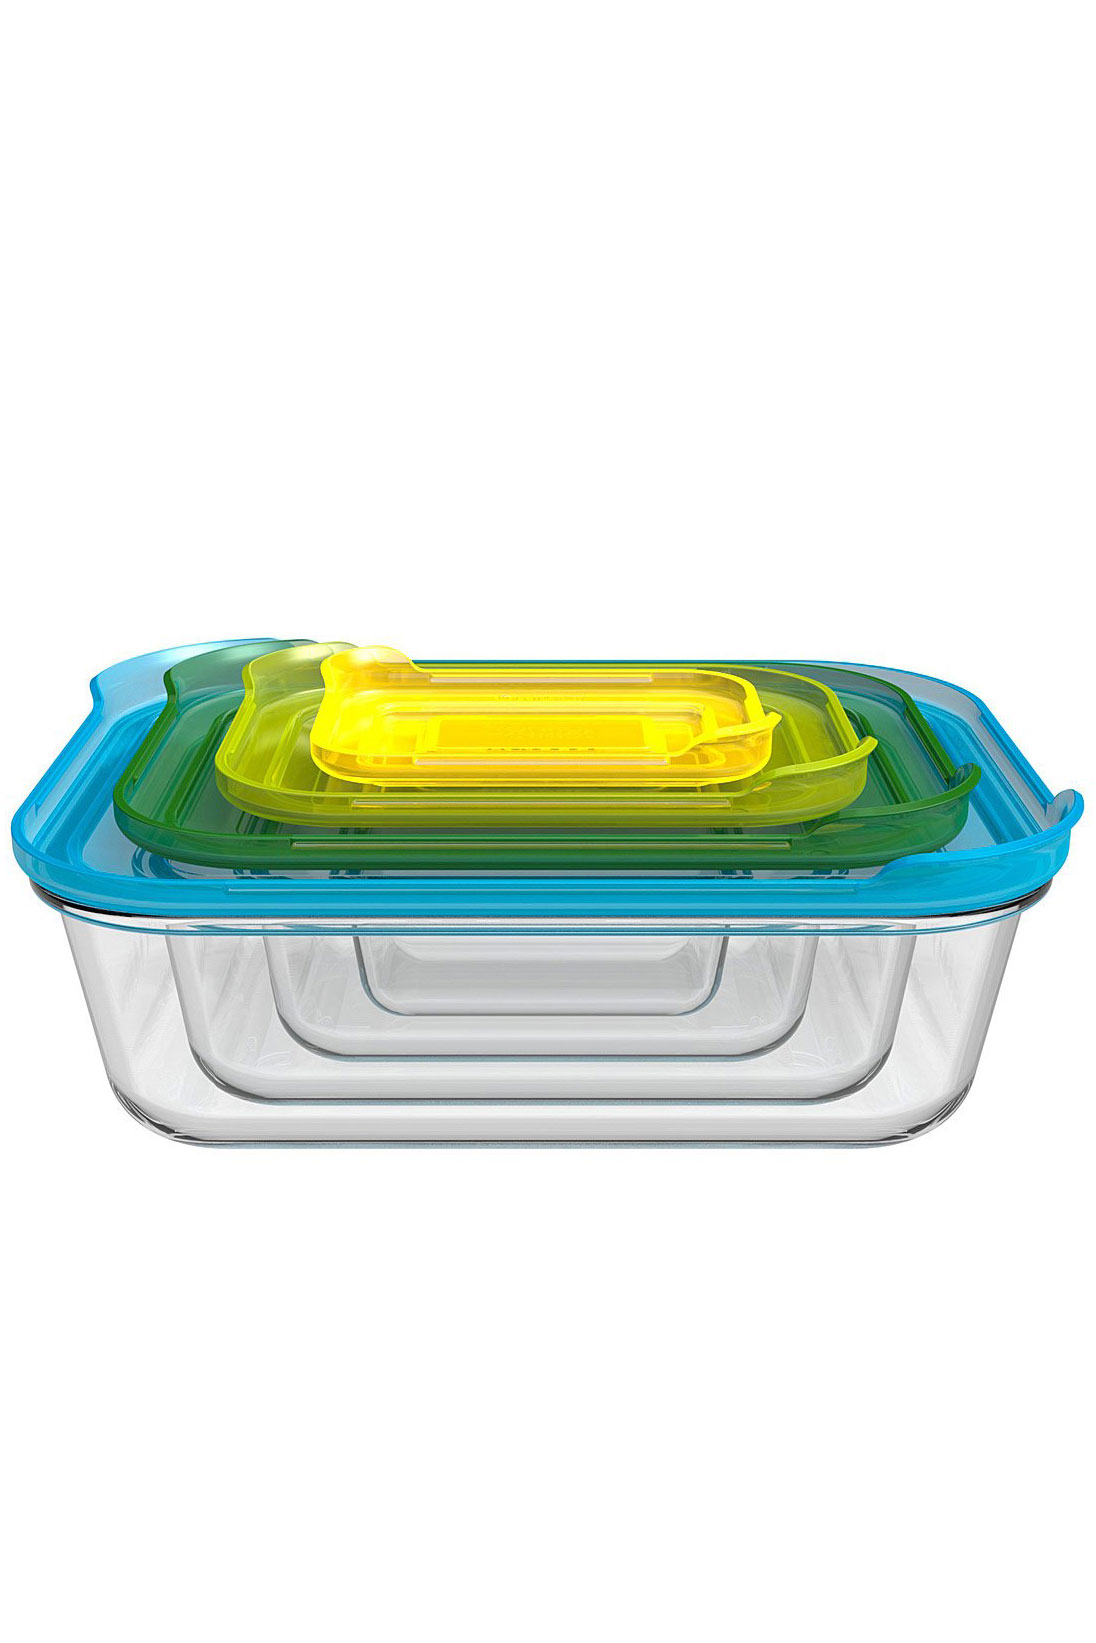 nesting-storage-containers